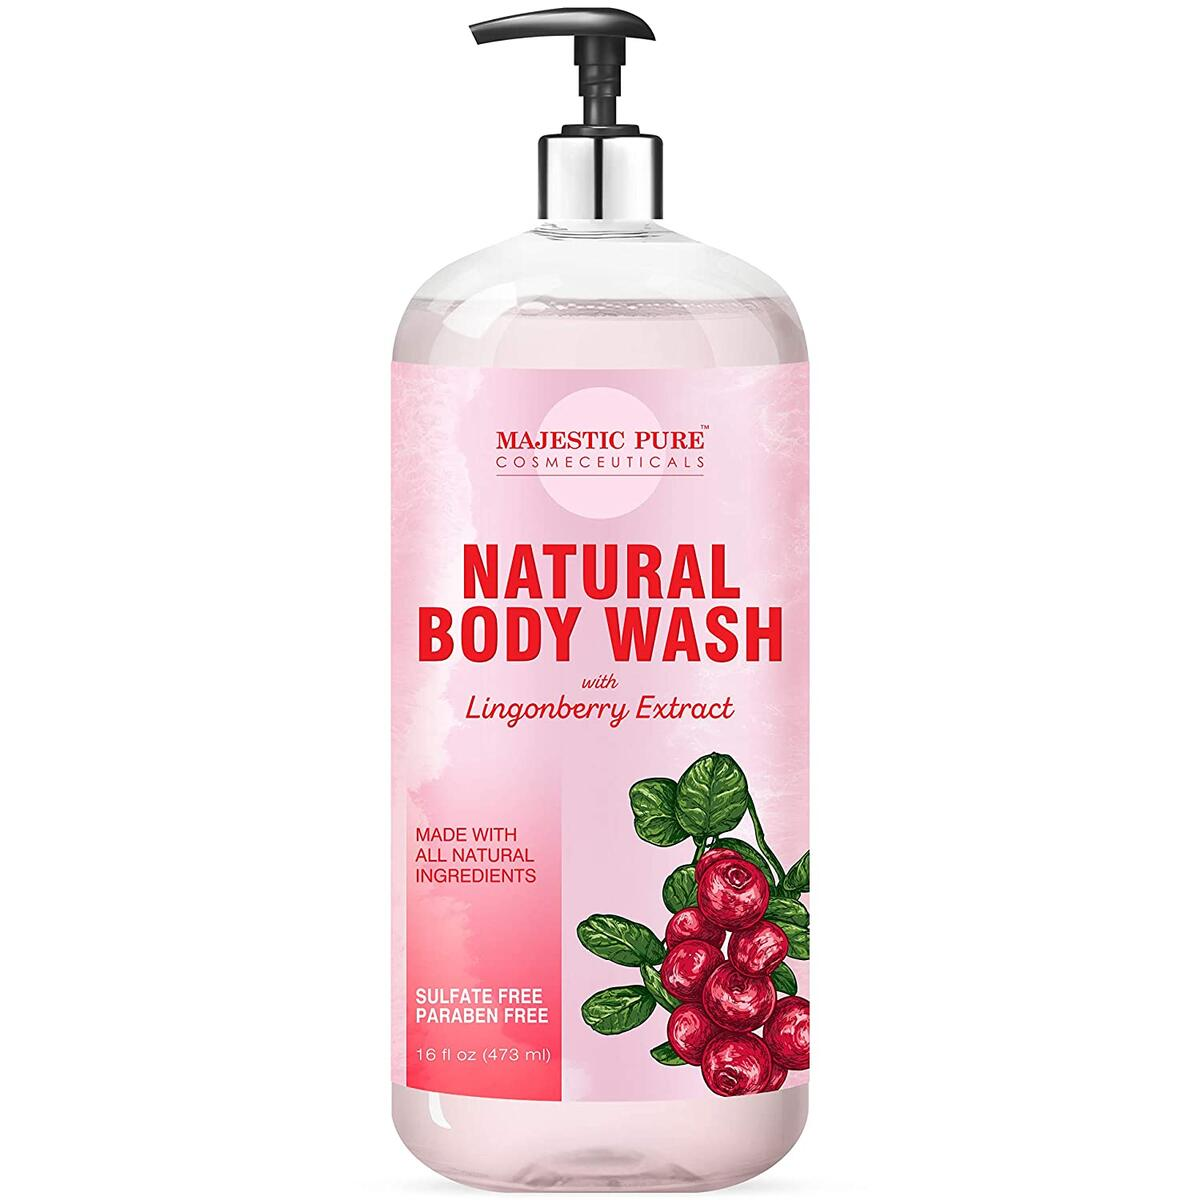 All Natural Body Wash with Lingonberry Extract - for Body, Face and Hand - Liquid Soap, Sulfate Free & Paraben Free, for Women and Men - 16 fl oz